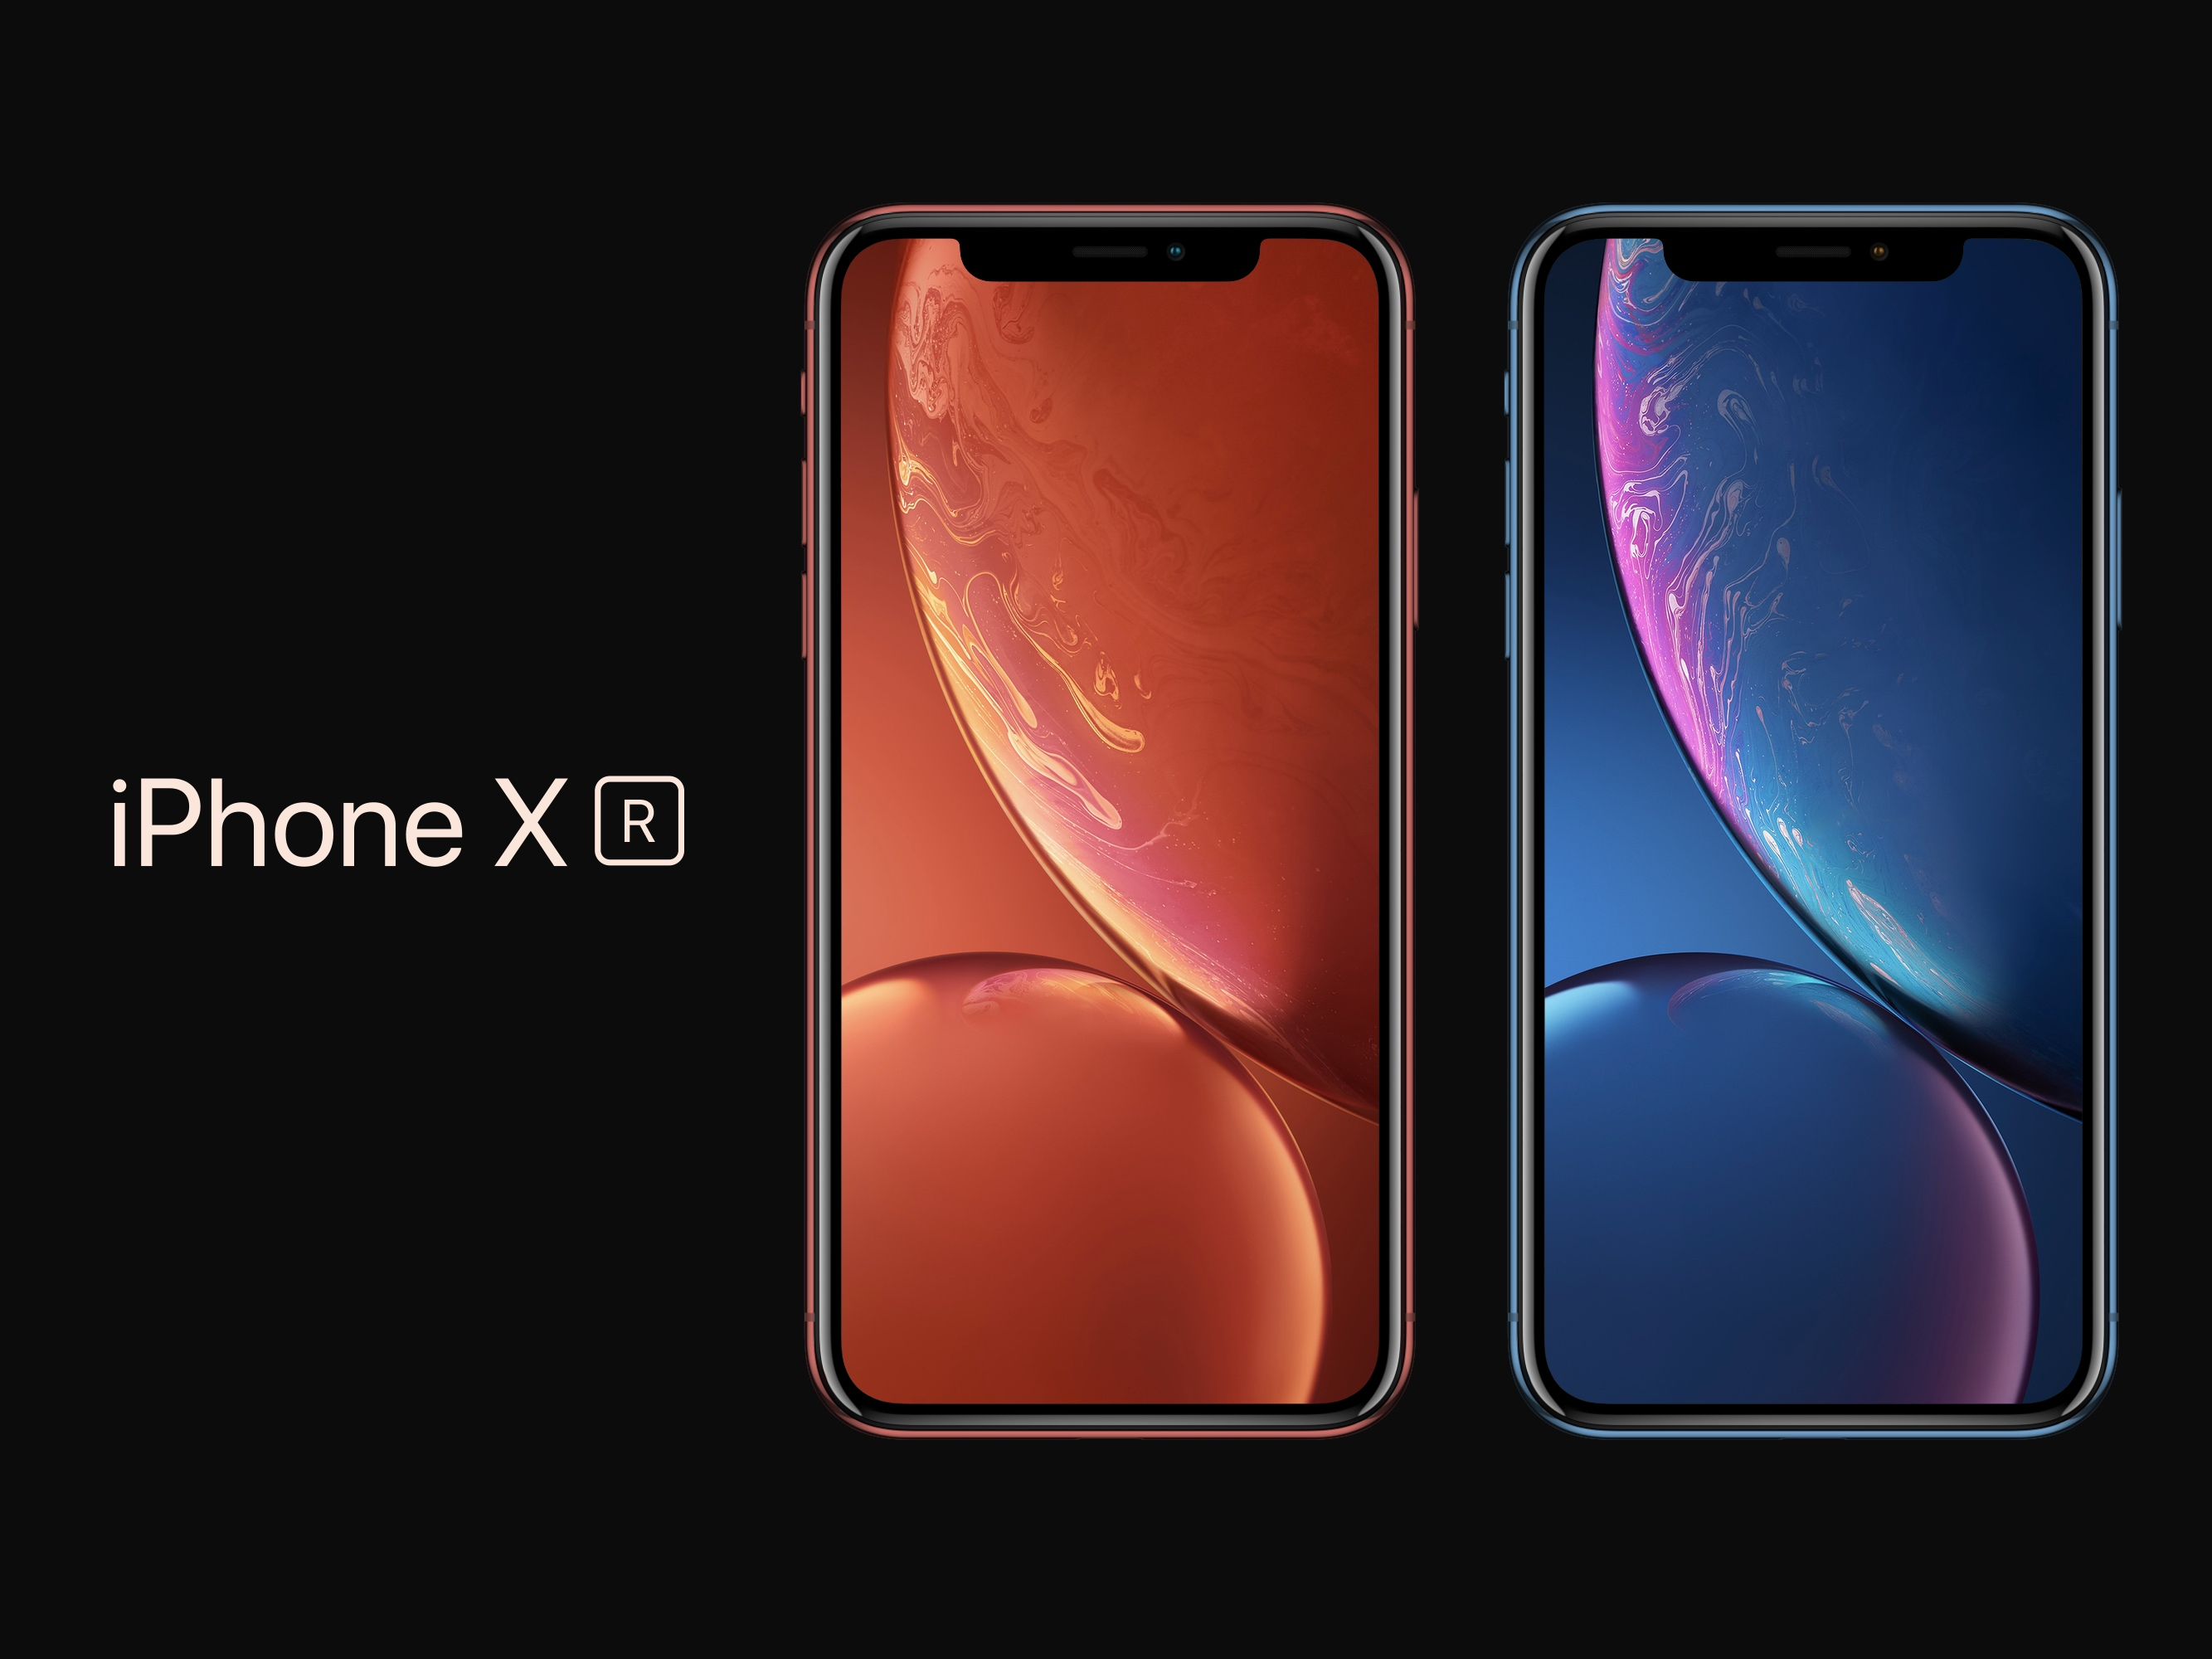 iPhone Xr, iPhone Xs Max, iPhone Xs wallpaper